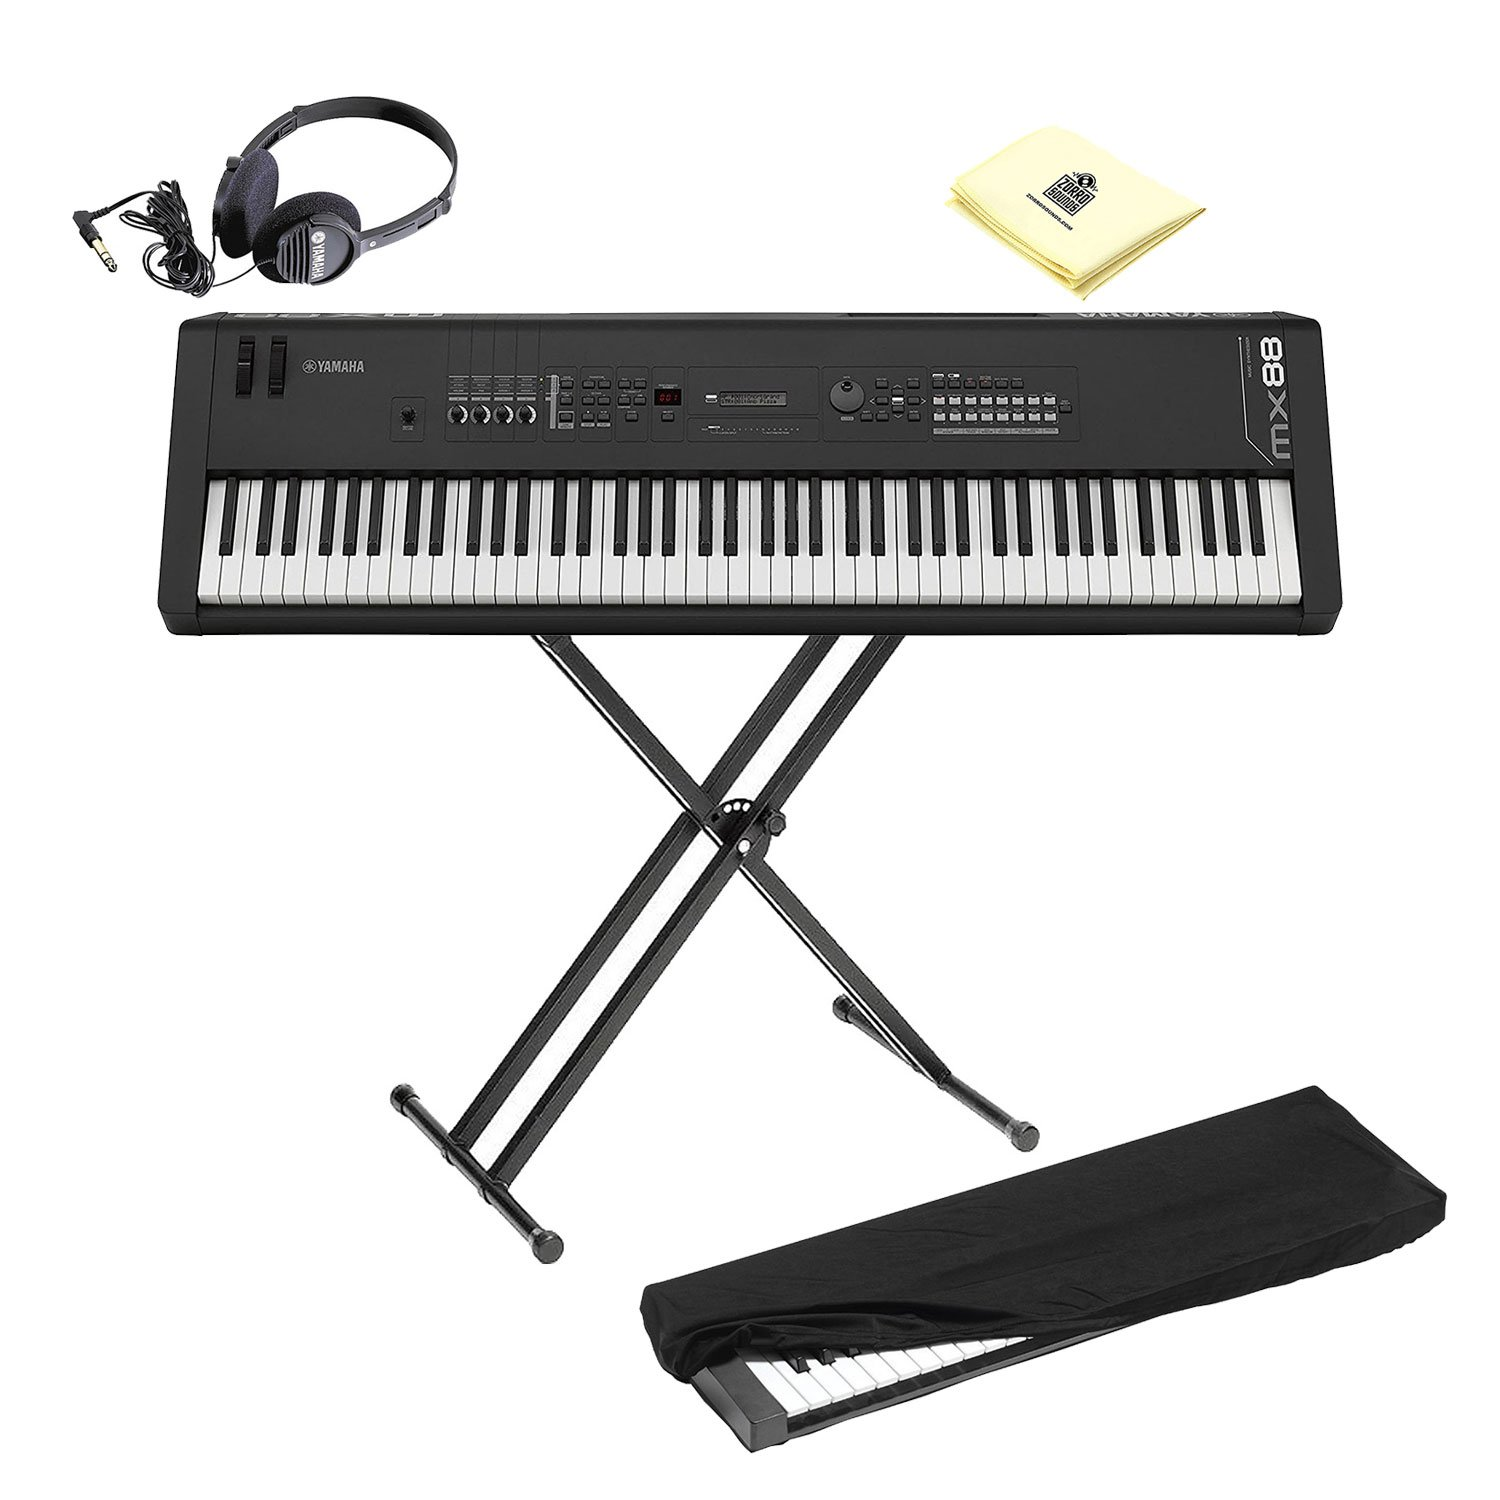 Yamaha MX88 Full-Size 88 Key Graded Hammer Standard Synthesizer Controller  with 1000+ MOTIF XS Sounds, VCM FX Engine, Bundled Software with Keyboard